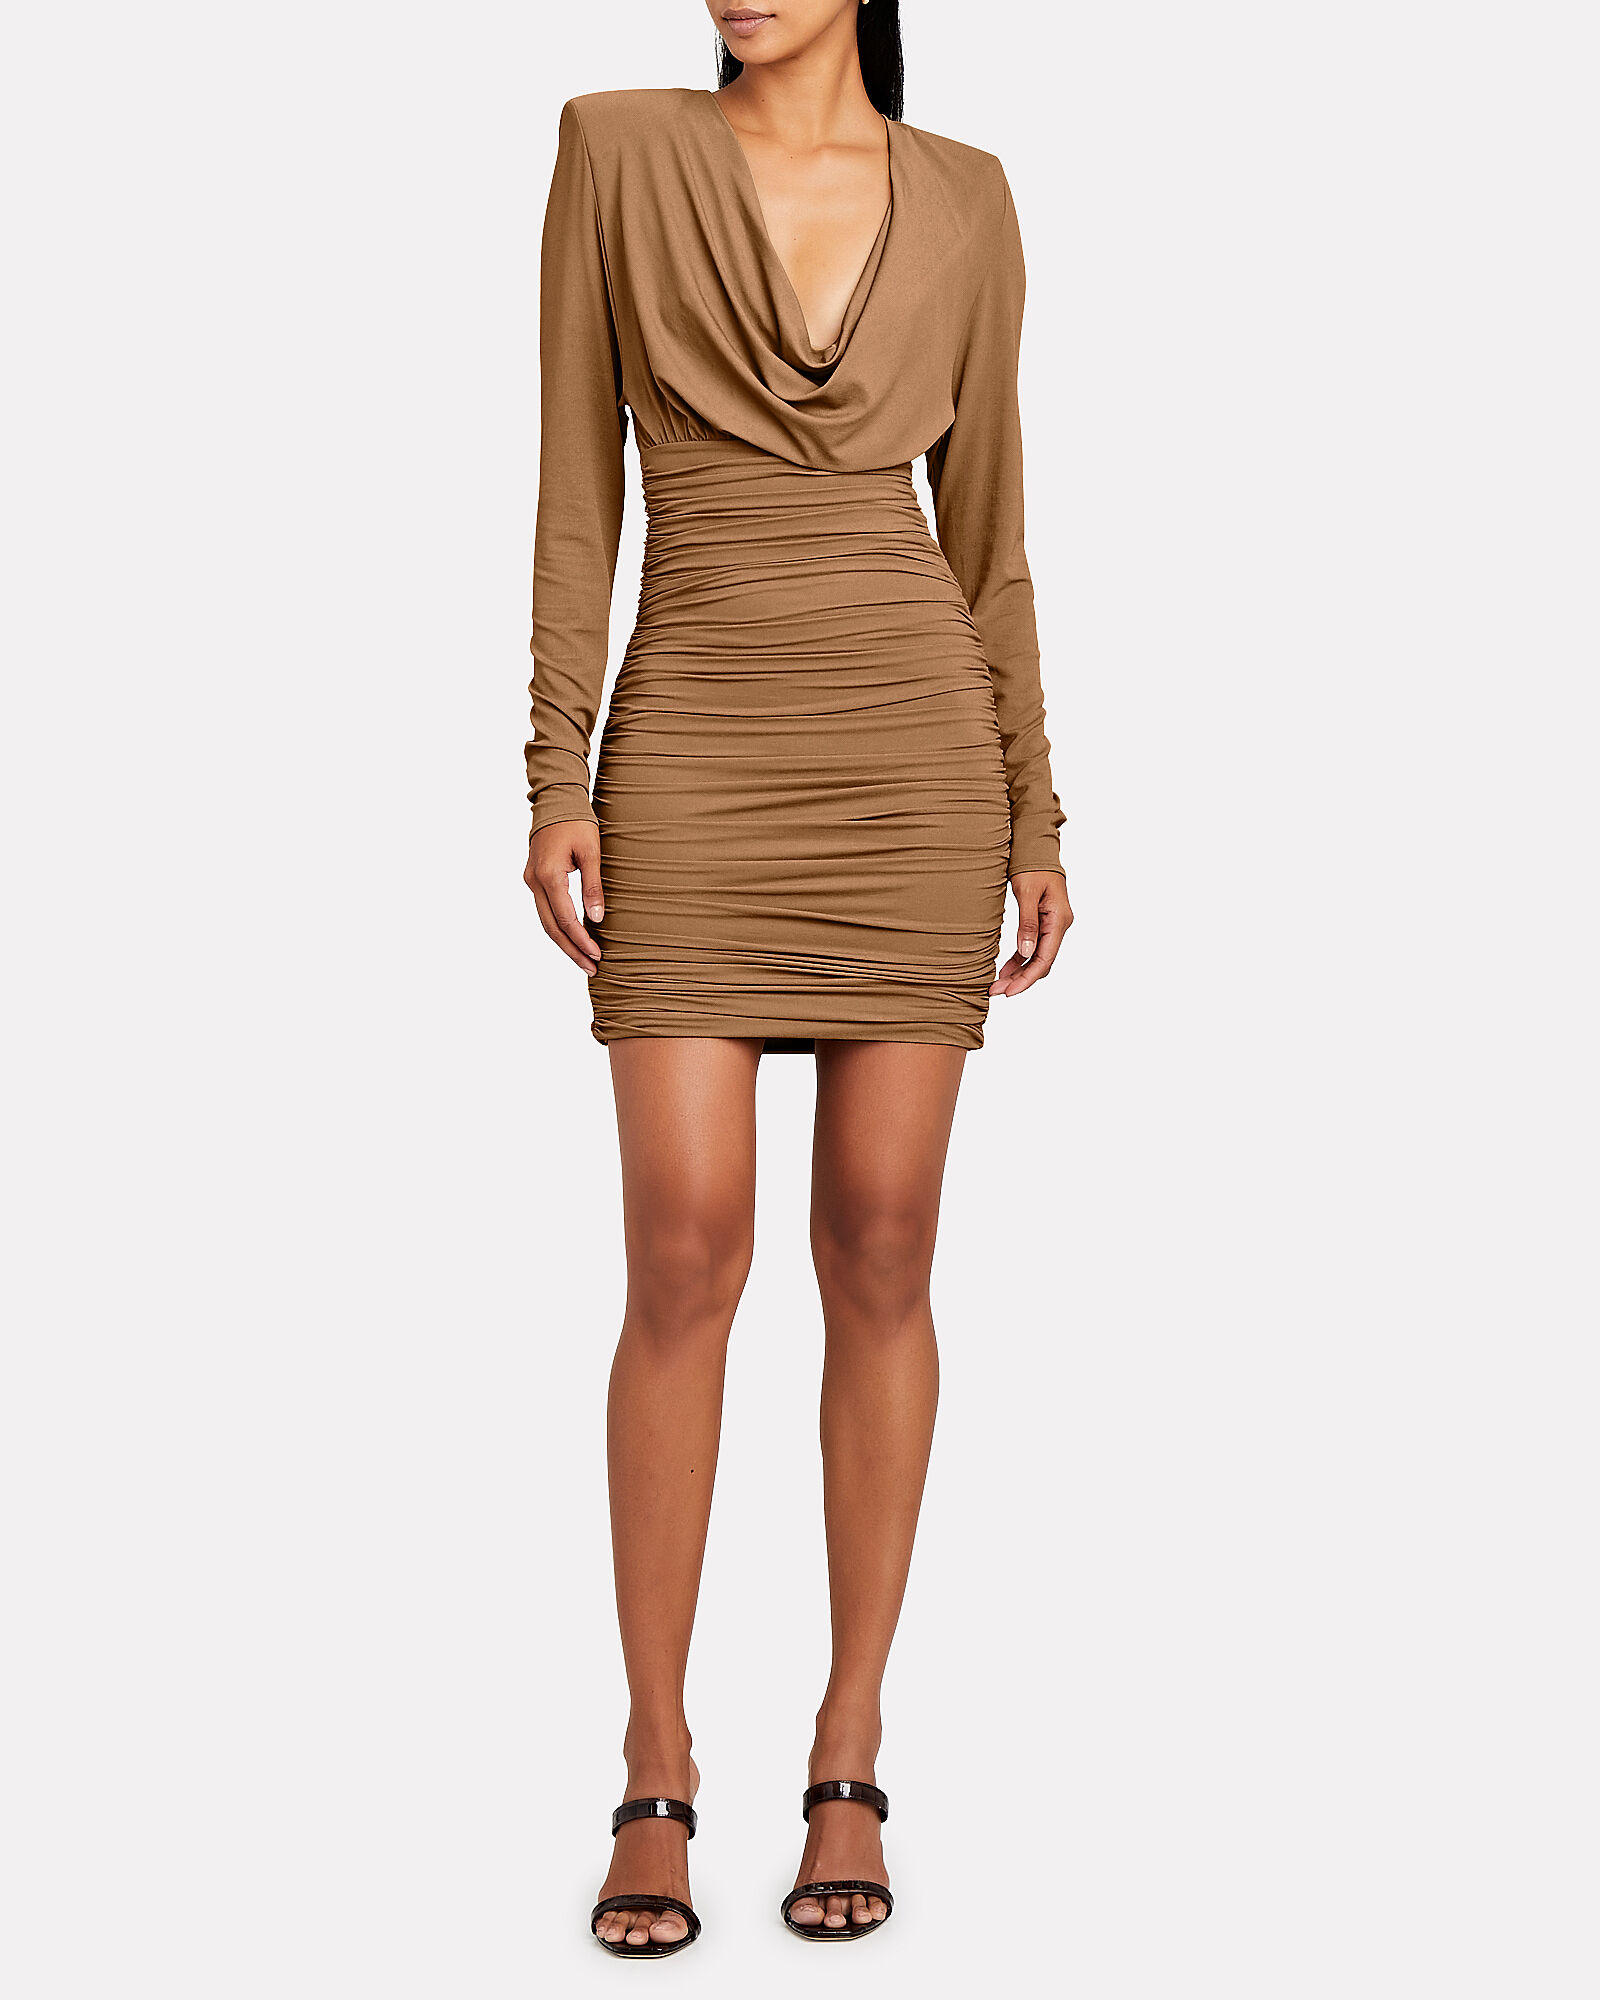 Draped Jersey Cowl Neck Mini Dress, , hi-res